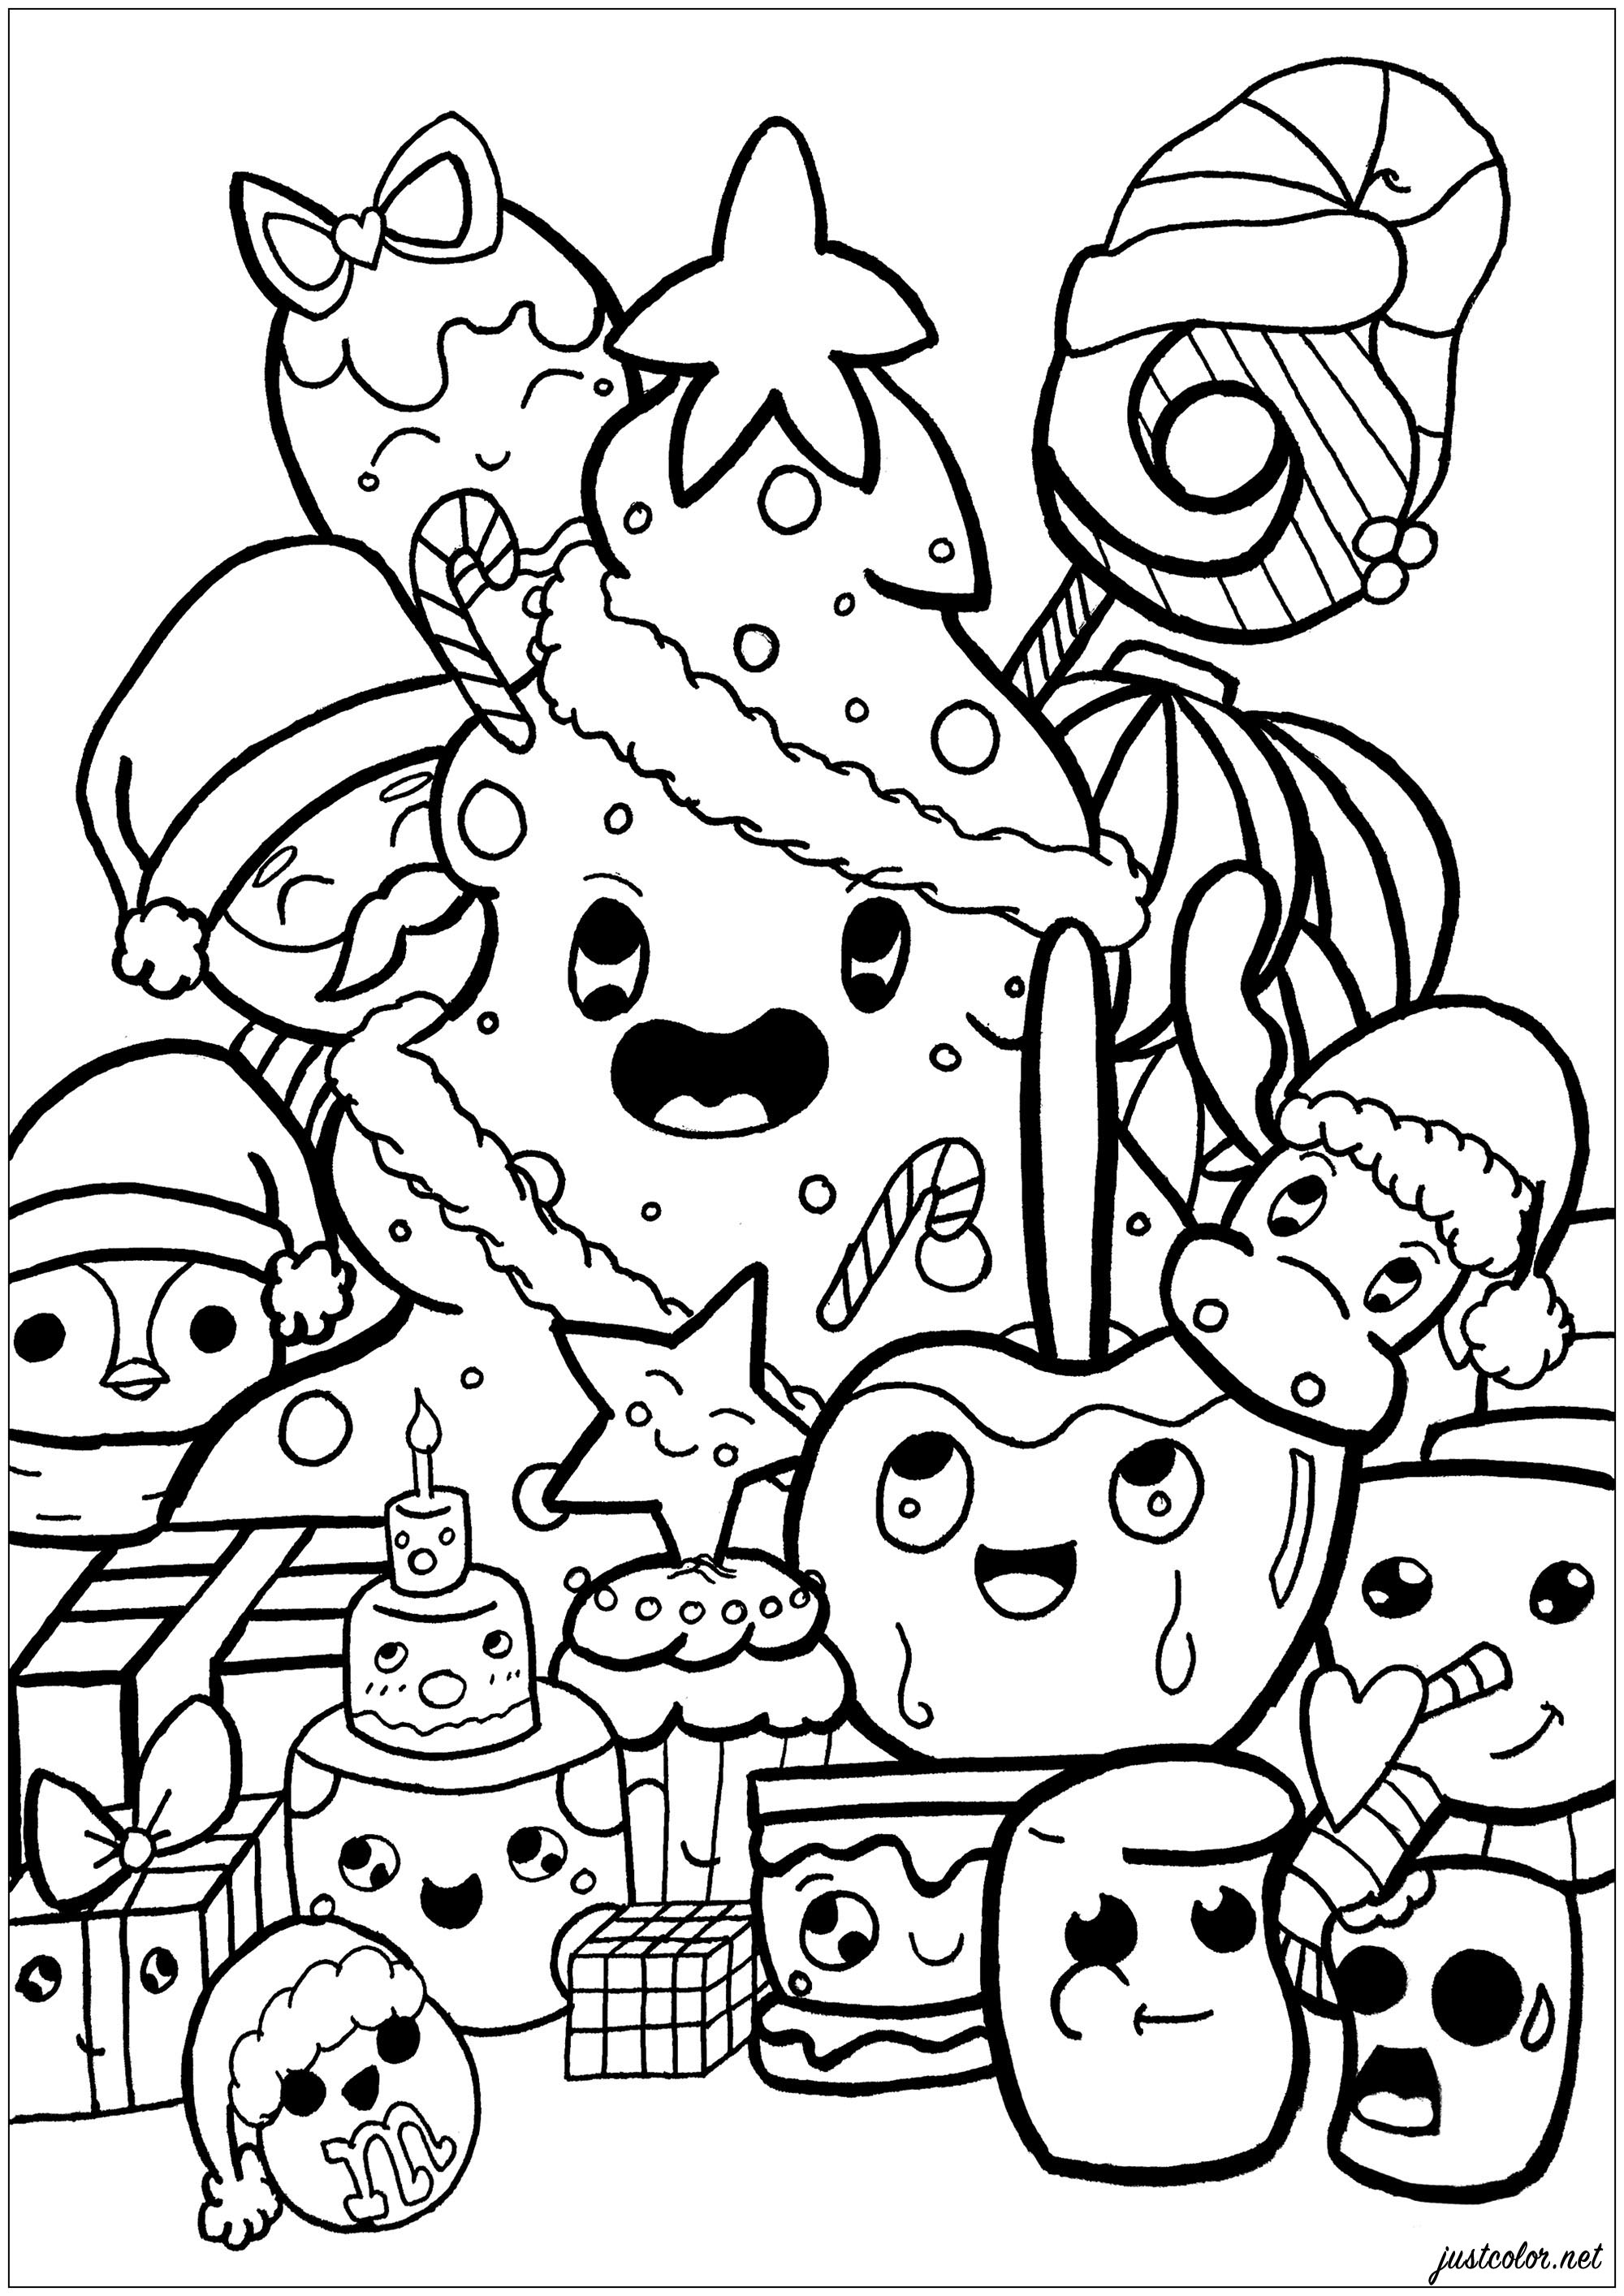 coloring art pages street art mix africa aztec street art adult coloring pages pages art coloring